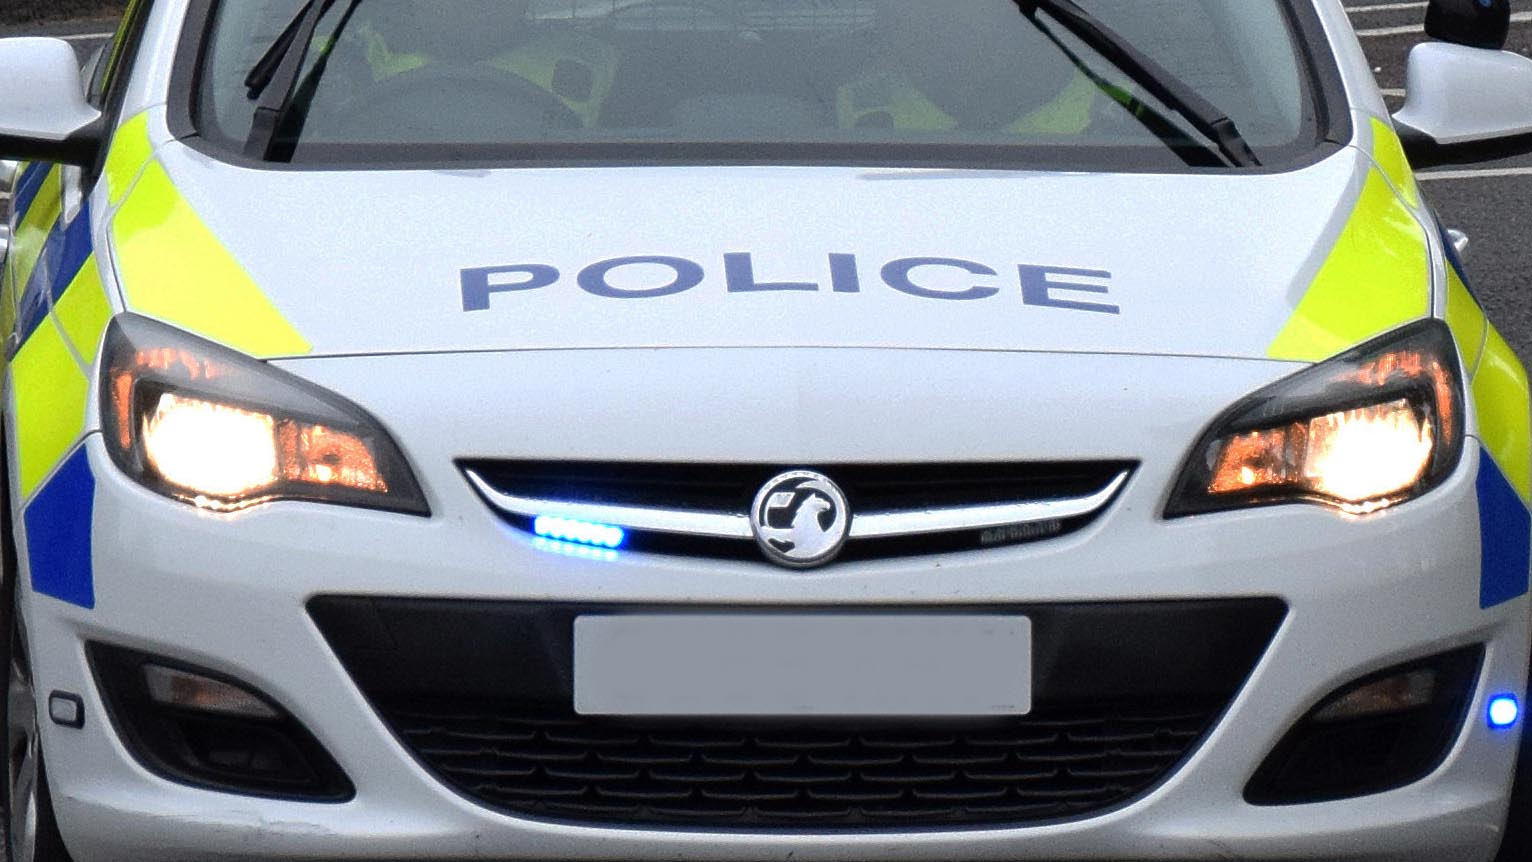 Officers investigating a distraction burglary and an attempted distraction burglary in Watford are appealing for information and witnesses.